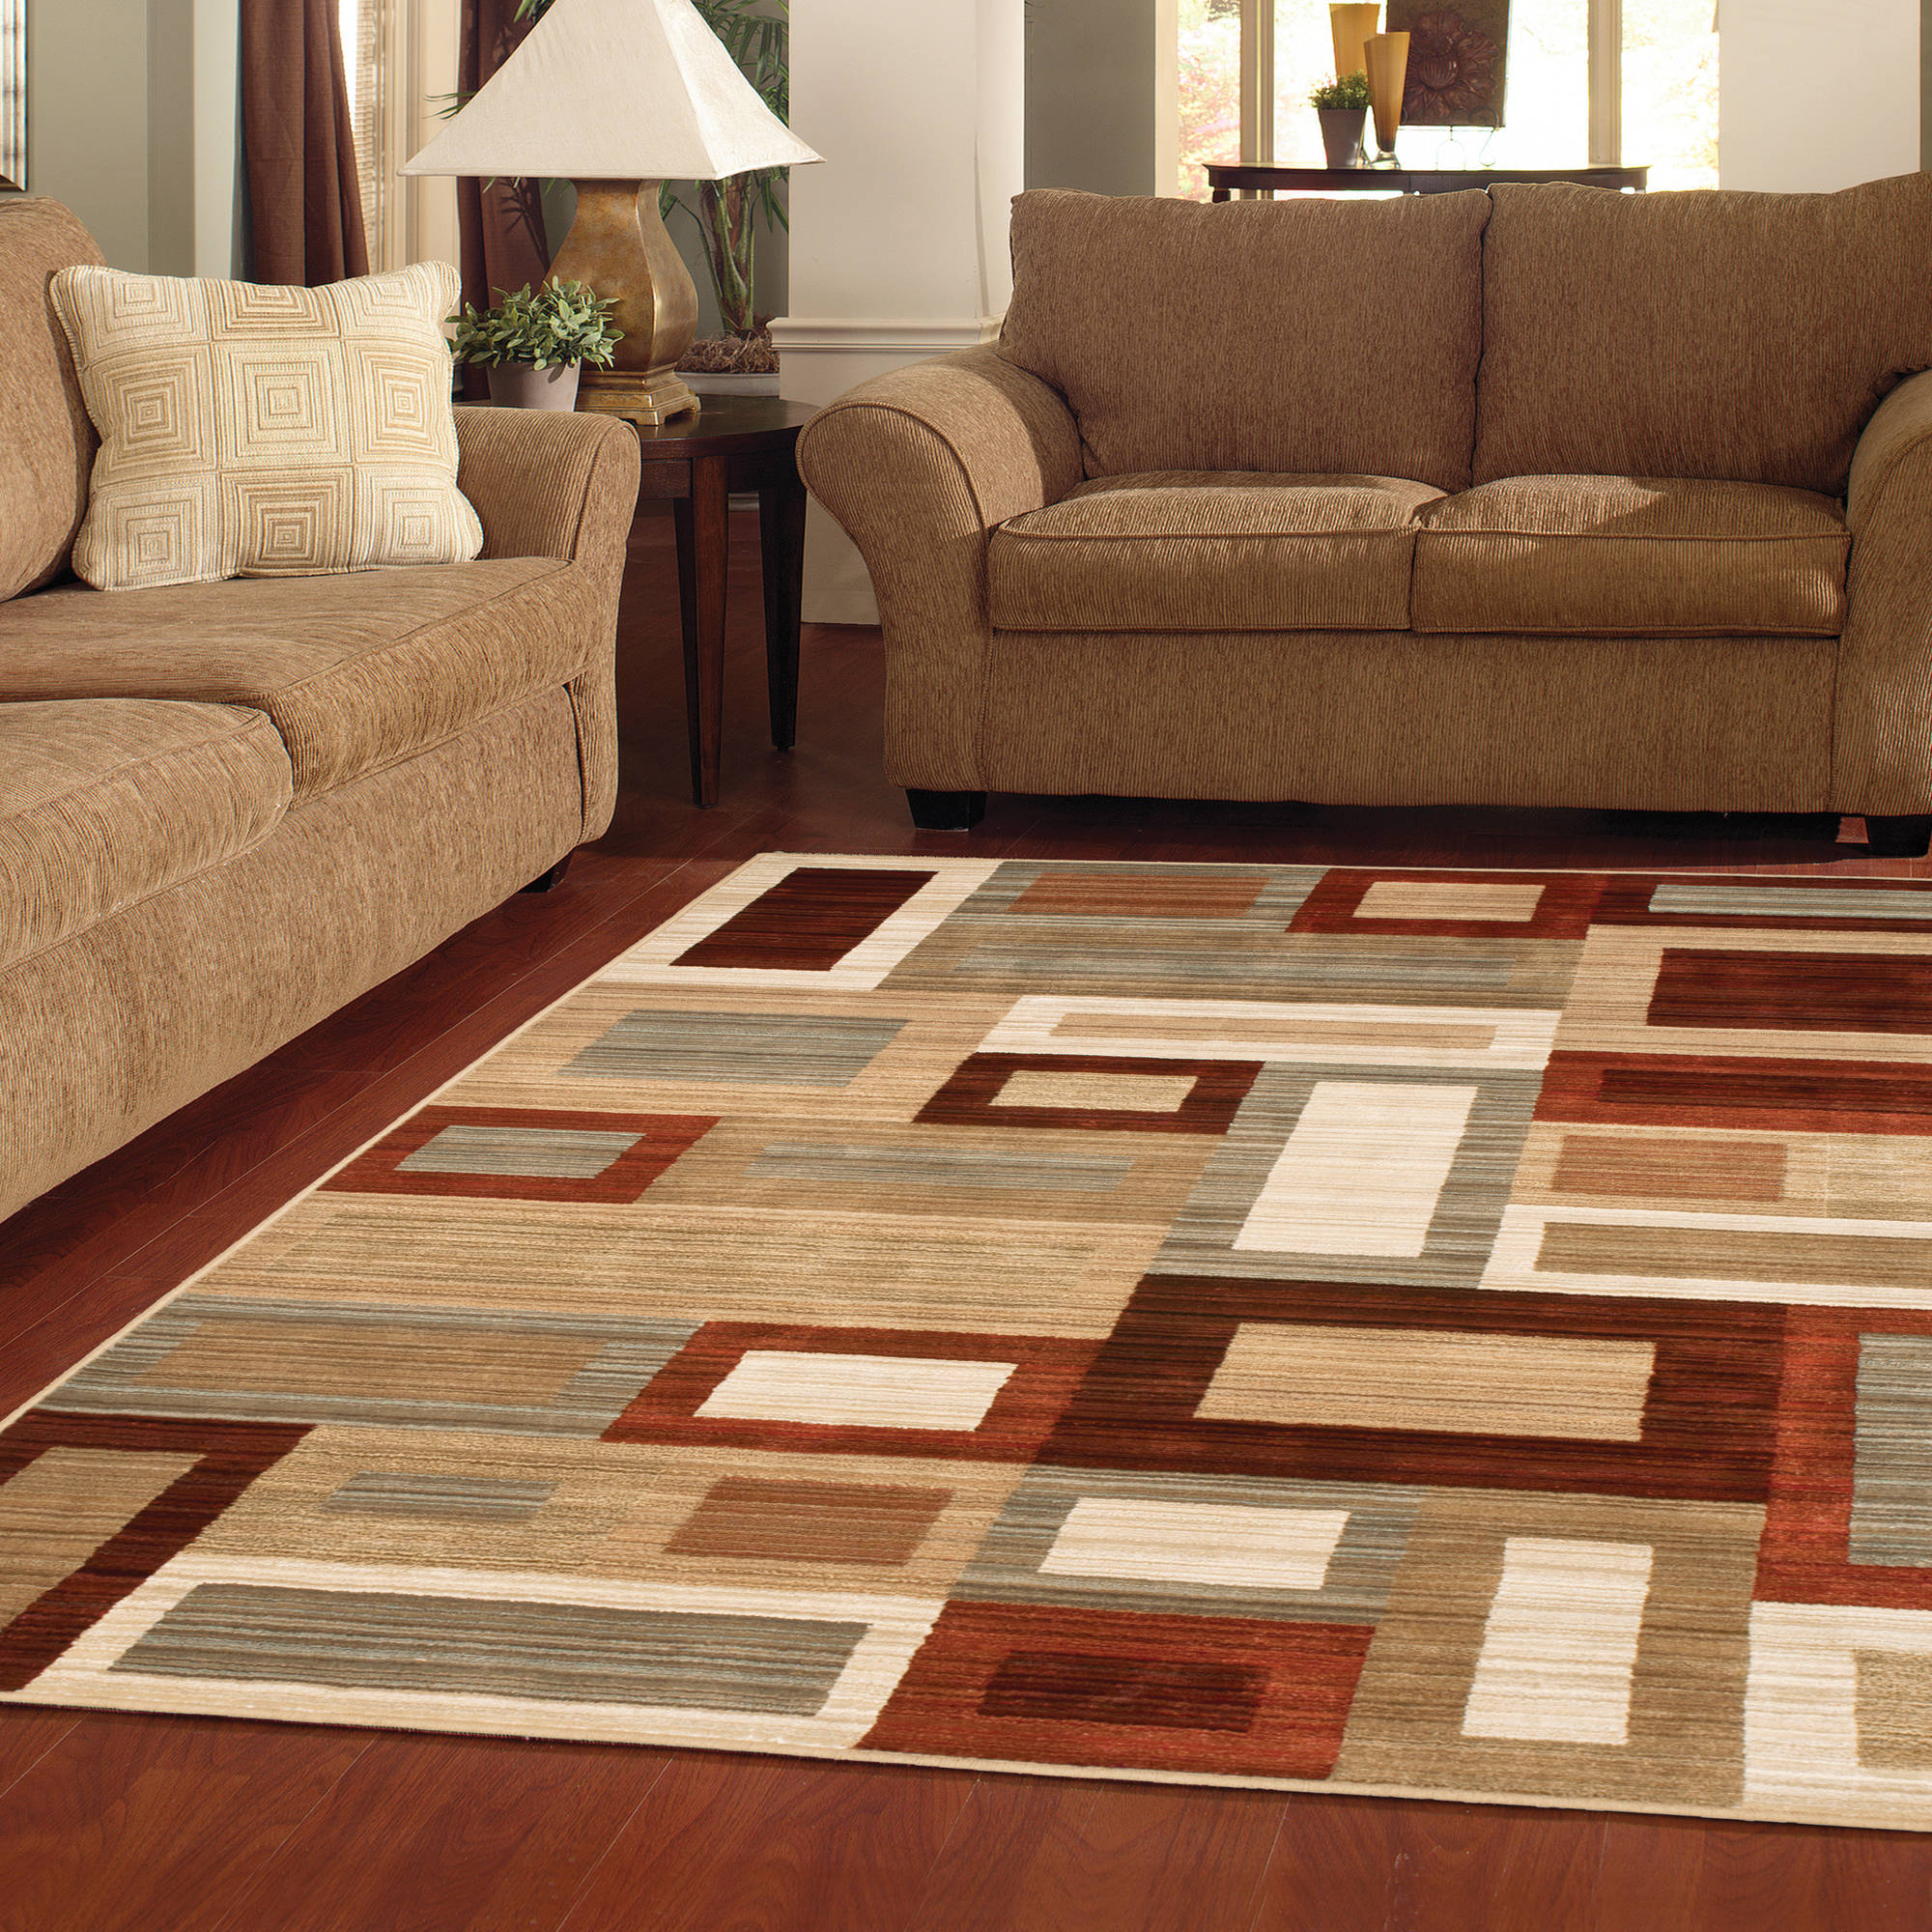 Better Homes And Gardens Franklin Squares Area Rug Or Runner   Walmart.com